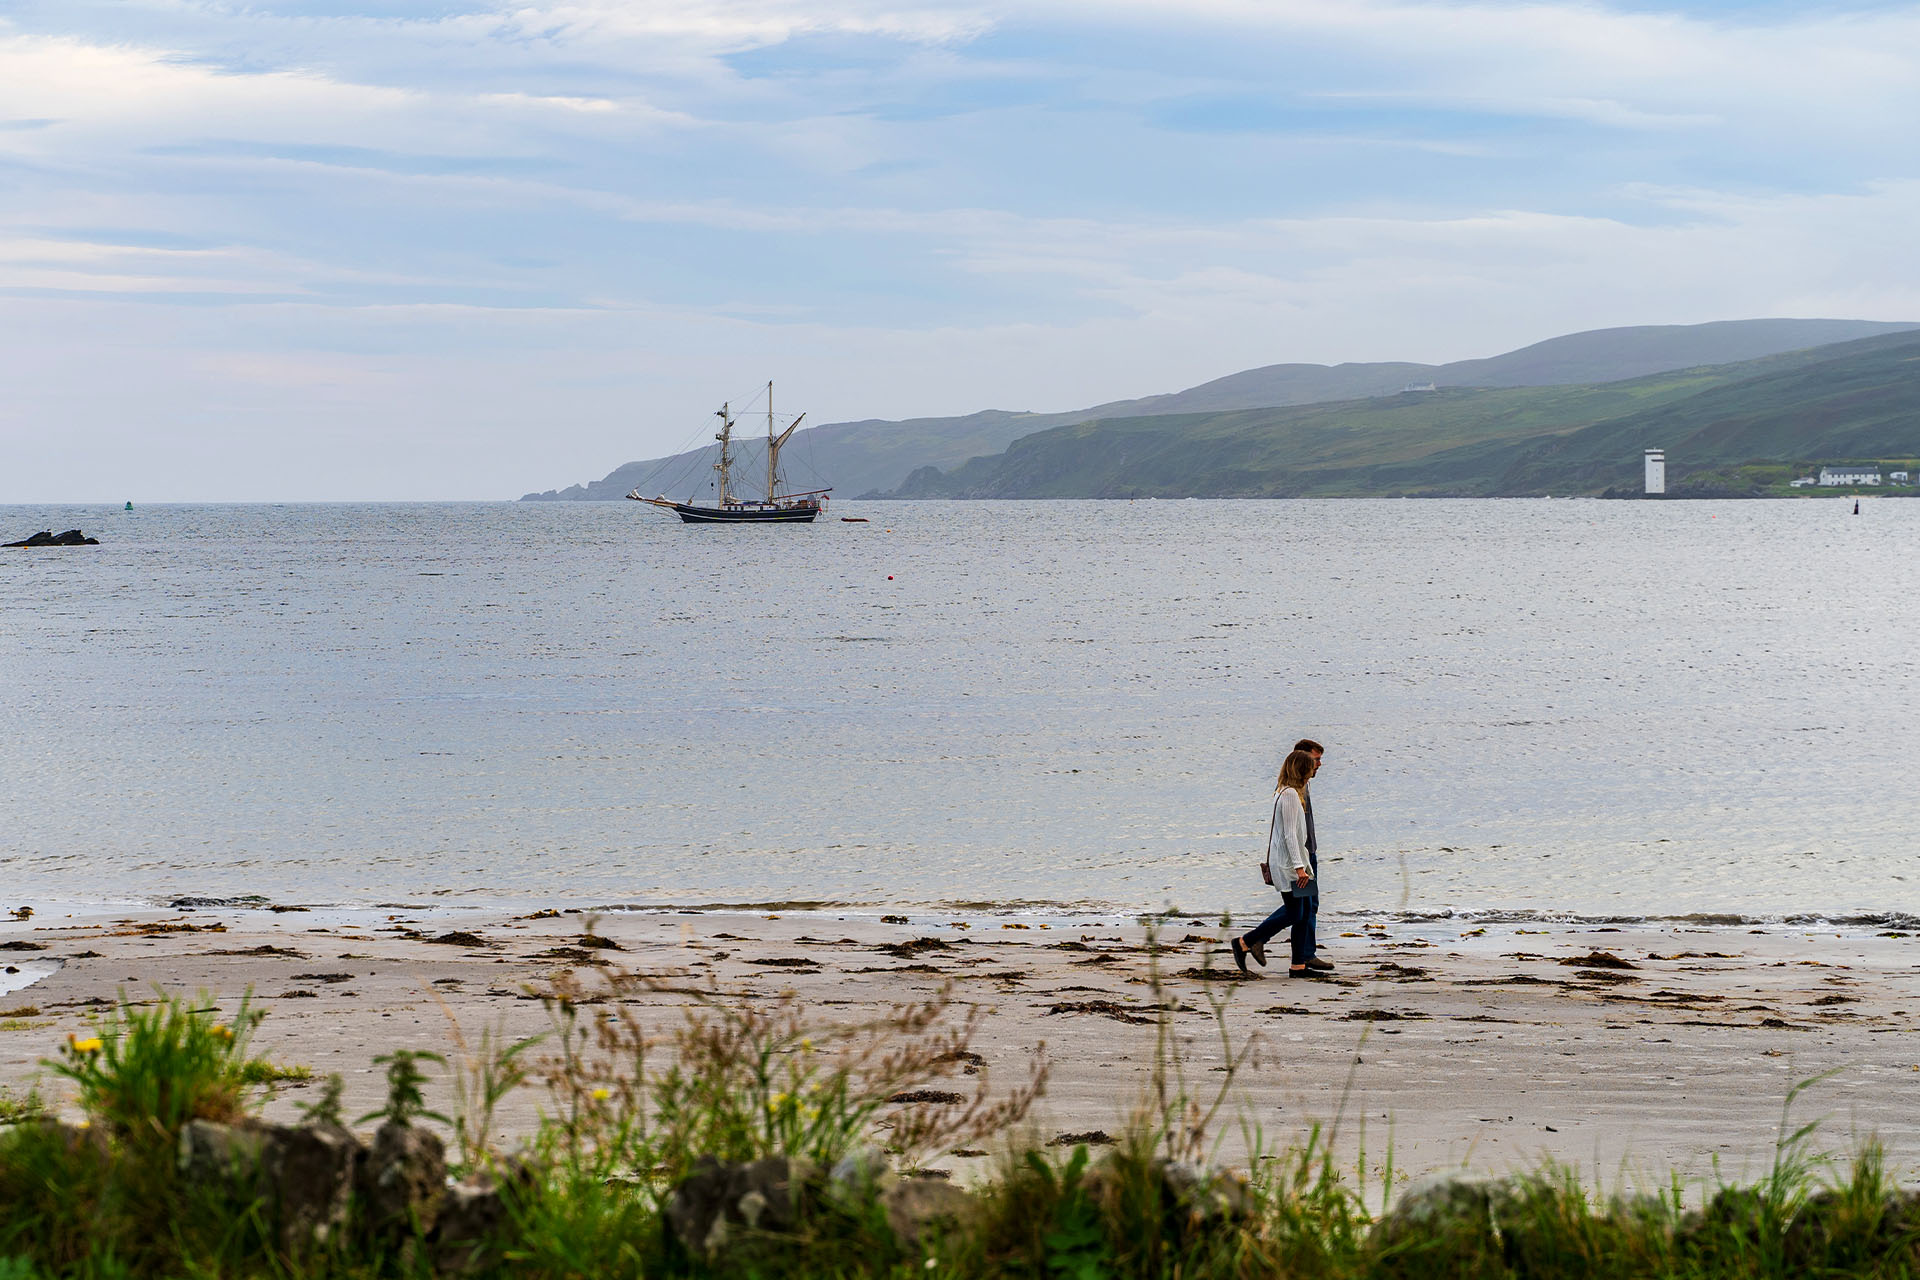 Lady of Avenel anchored in Scotland